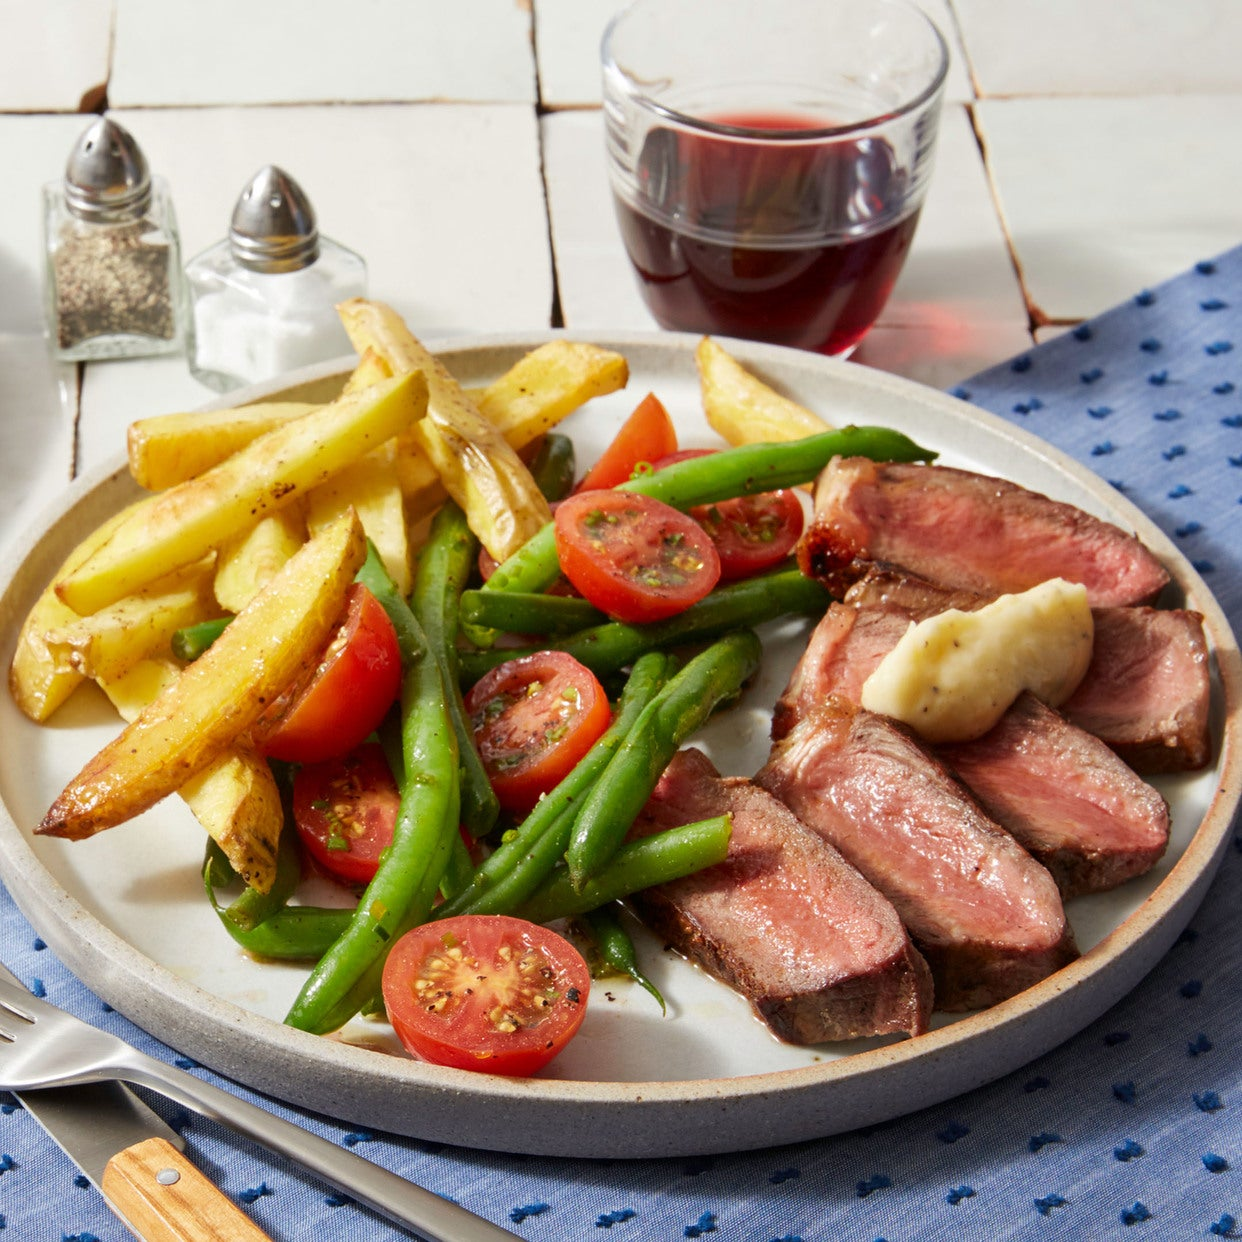 Strip Steaks & Garlic Butter with Oven Fries & Tomato-Green Bean Salad